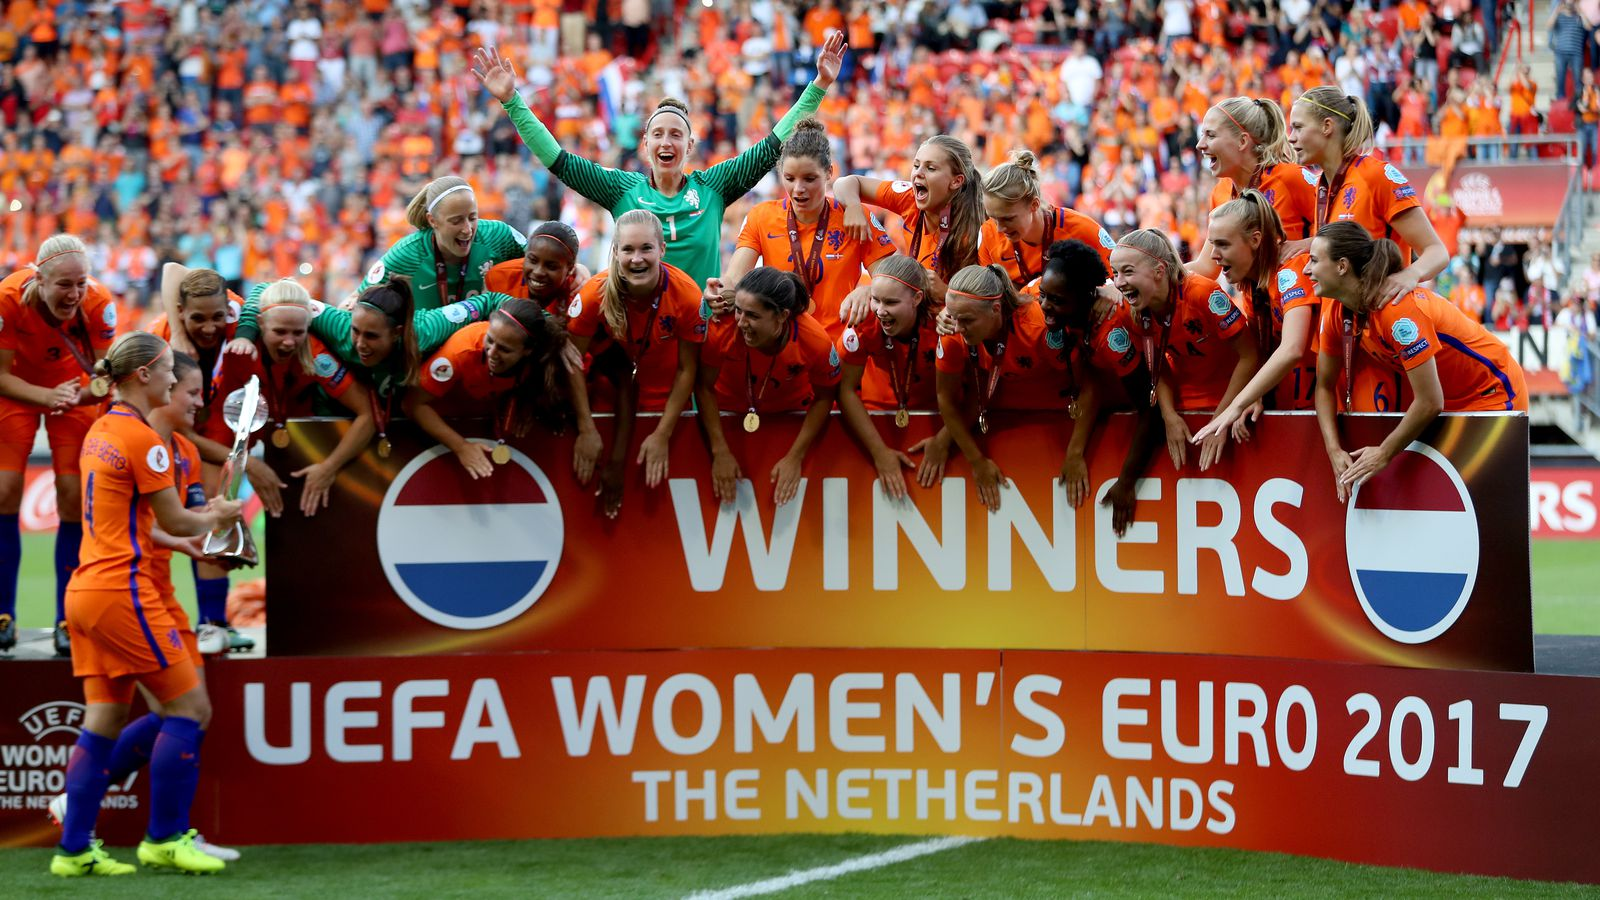 The UEFA Women's Euro 2017 final was the best soccer game of the summer